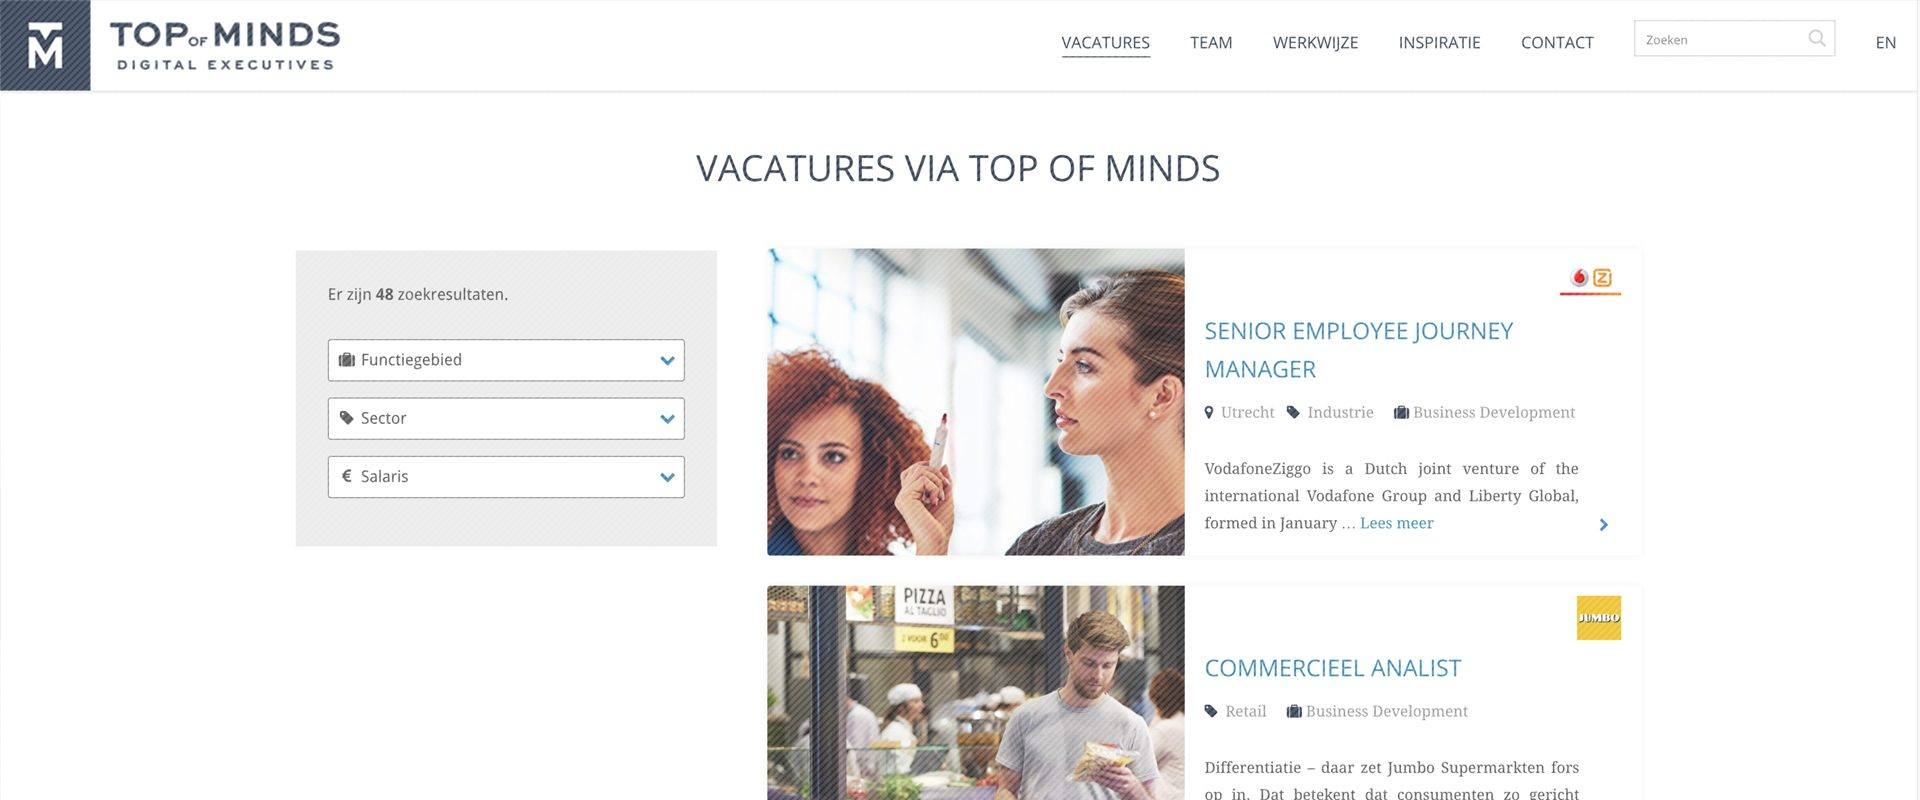 Topofminds-recruitment-vacatures